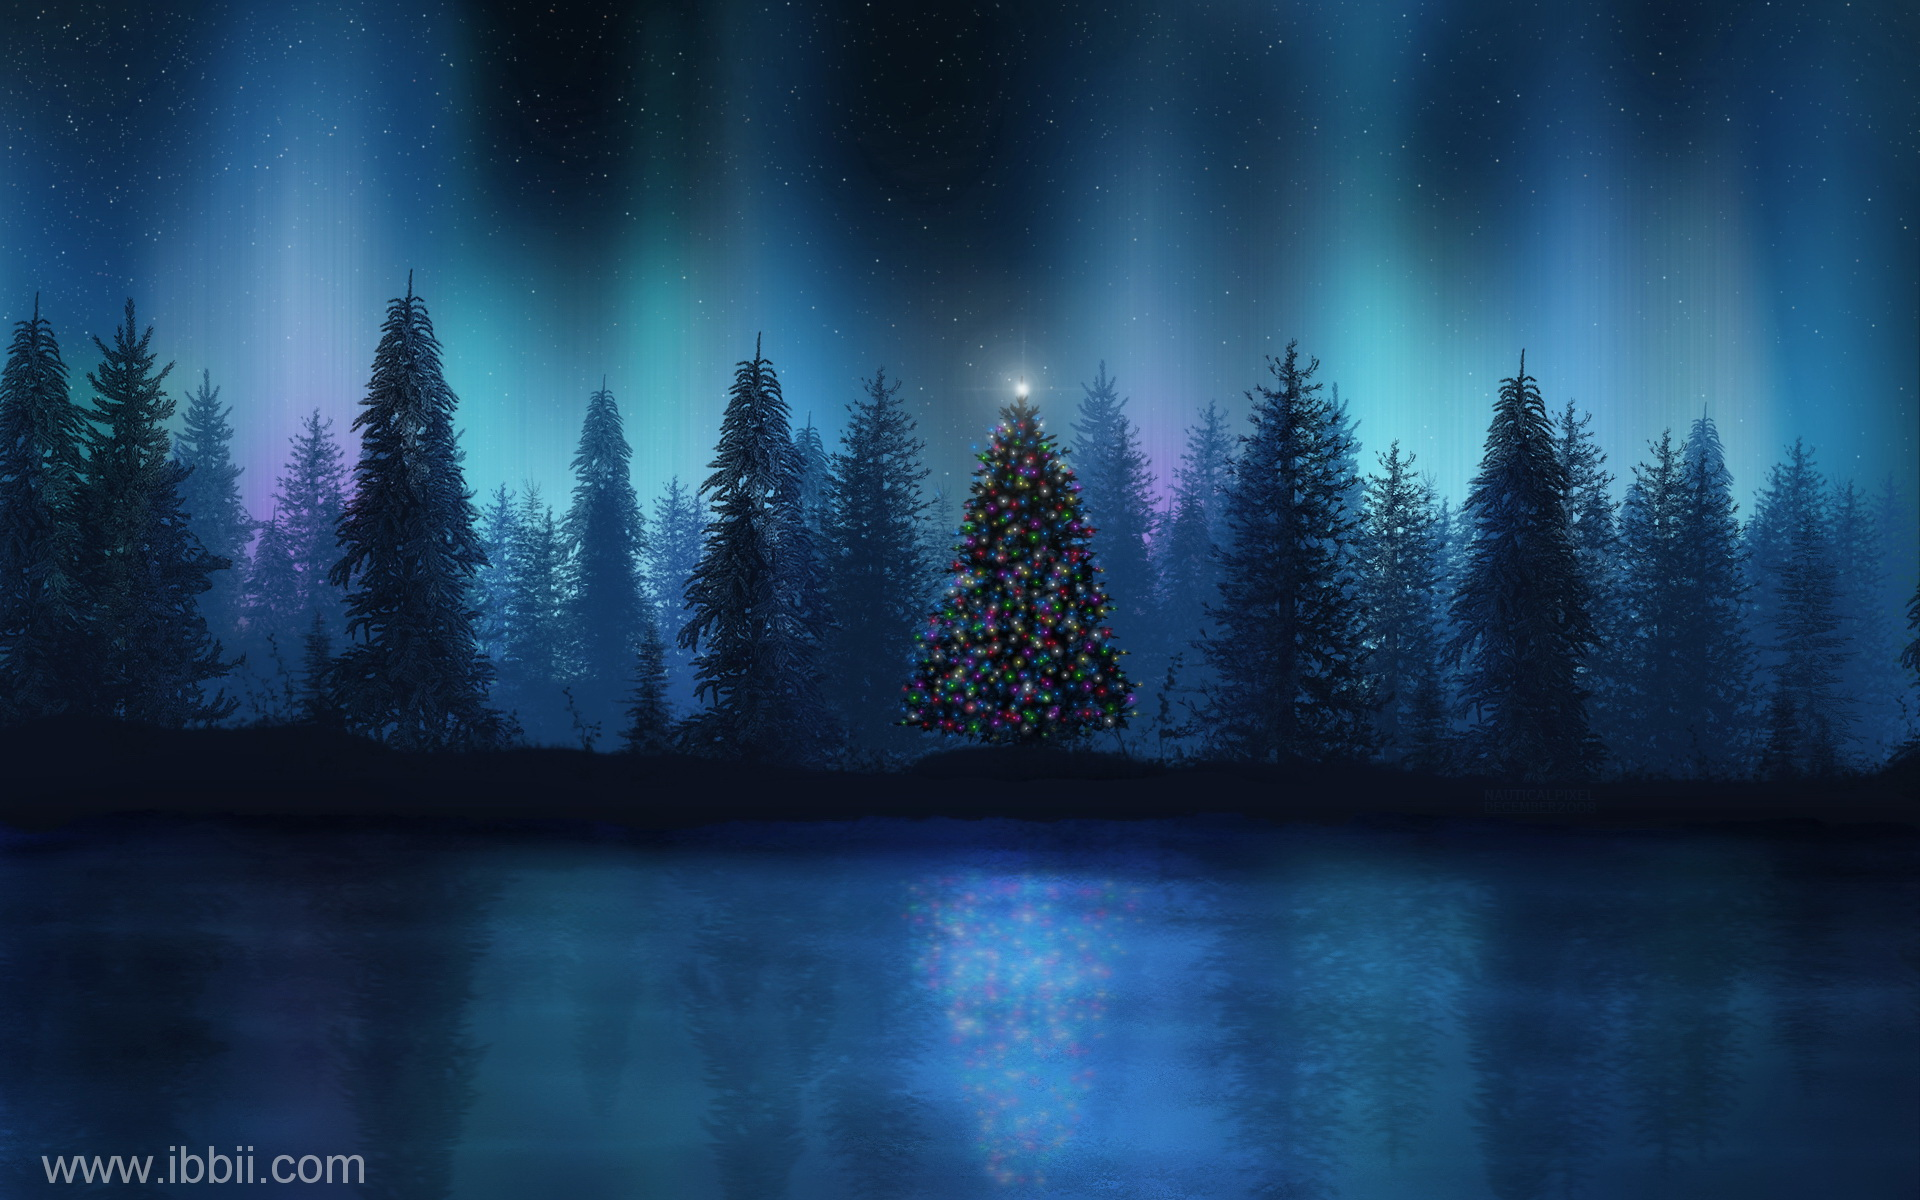 Winter Night Scenes Wallpaper